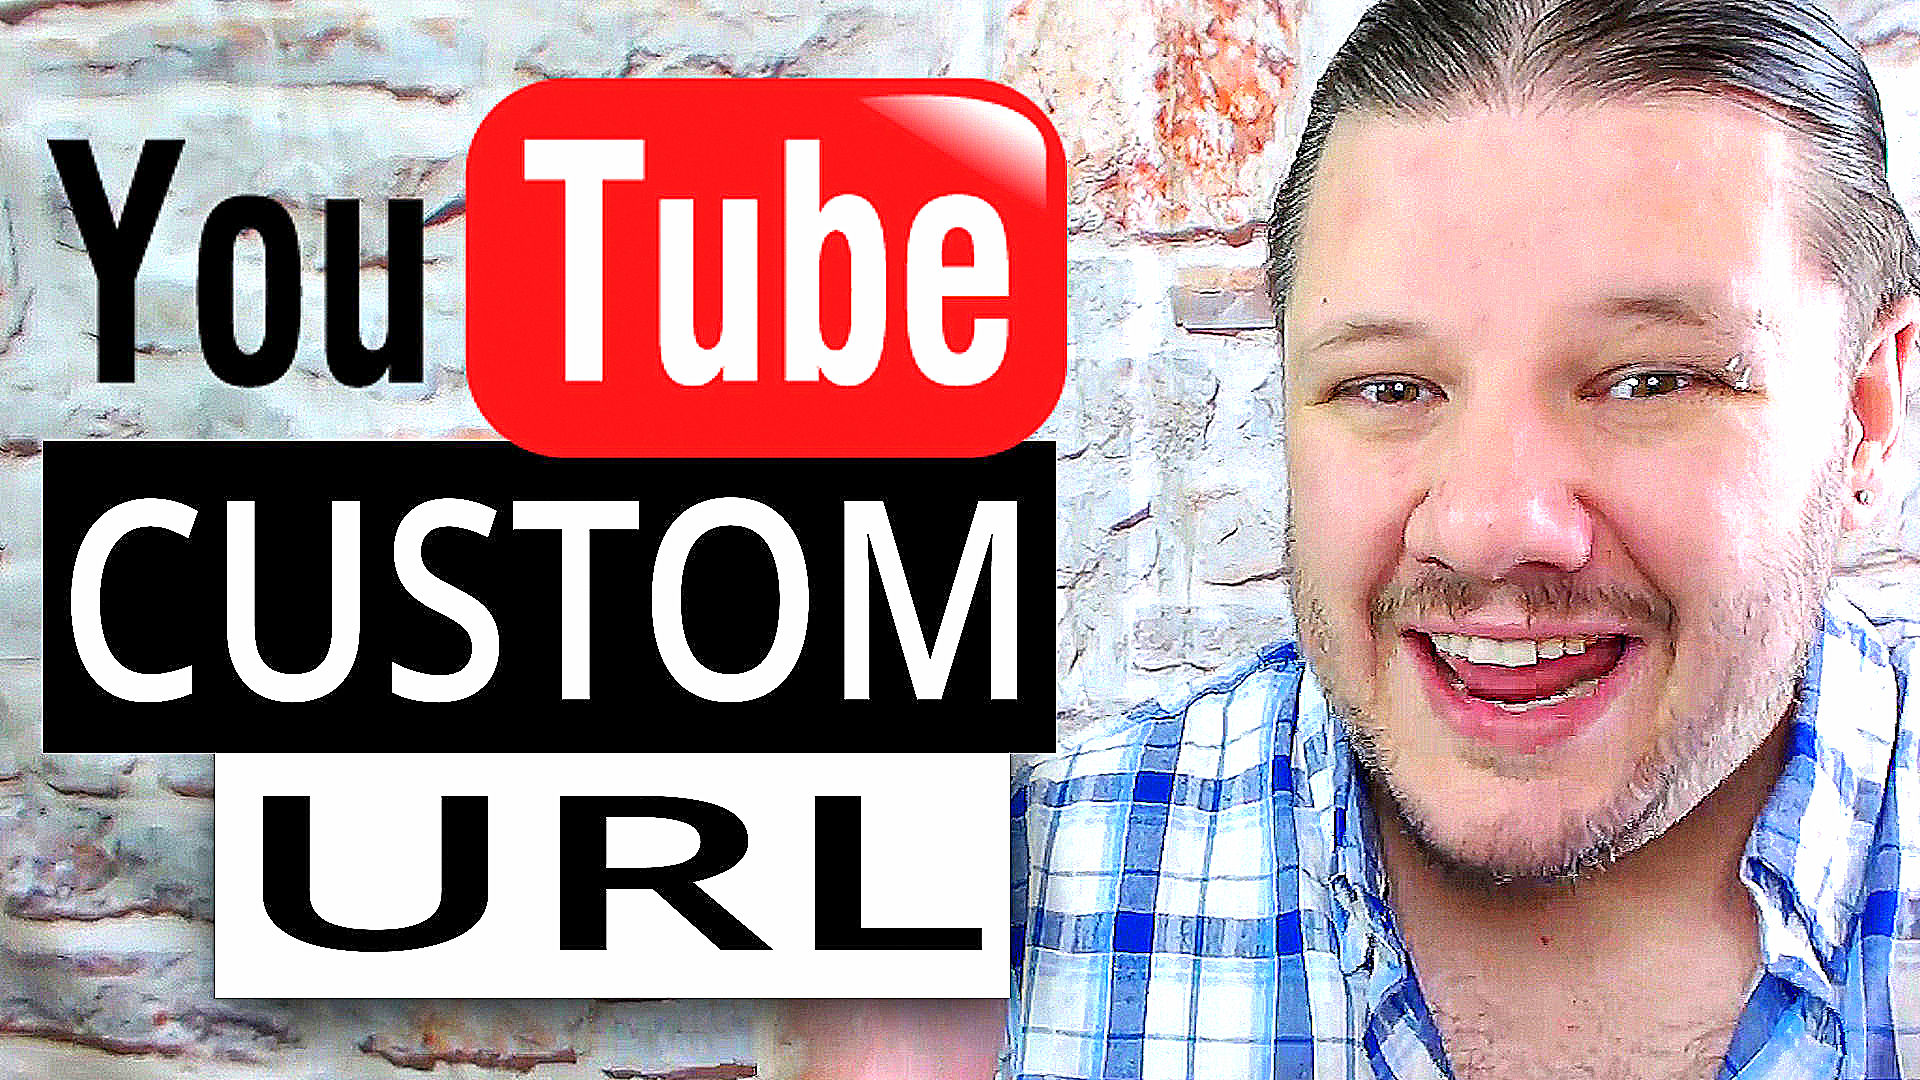 alan spicer,alanspicer,youtube tips,youtube tricks,How to Get YouTube Custom URL 2017,YouTube Custom URL 2017,YouTube Custom channel url,how to change youtube channel name,change youtube channel name,youtube custom url,youtube channel name,how to get a custom url on youtube,custom url on youtube,channel url youtube,custom channel name youtube,custom channel name,youtube custom channel name,custom youtube url,custom url,youtube custom url link,channel url